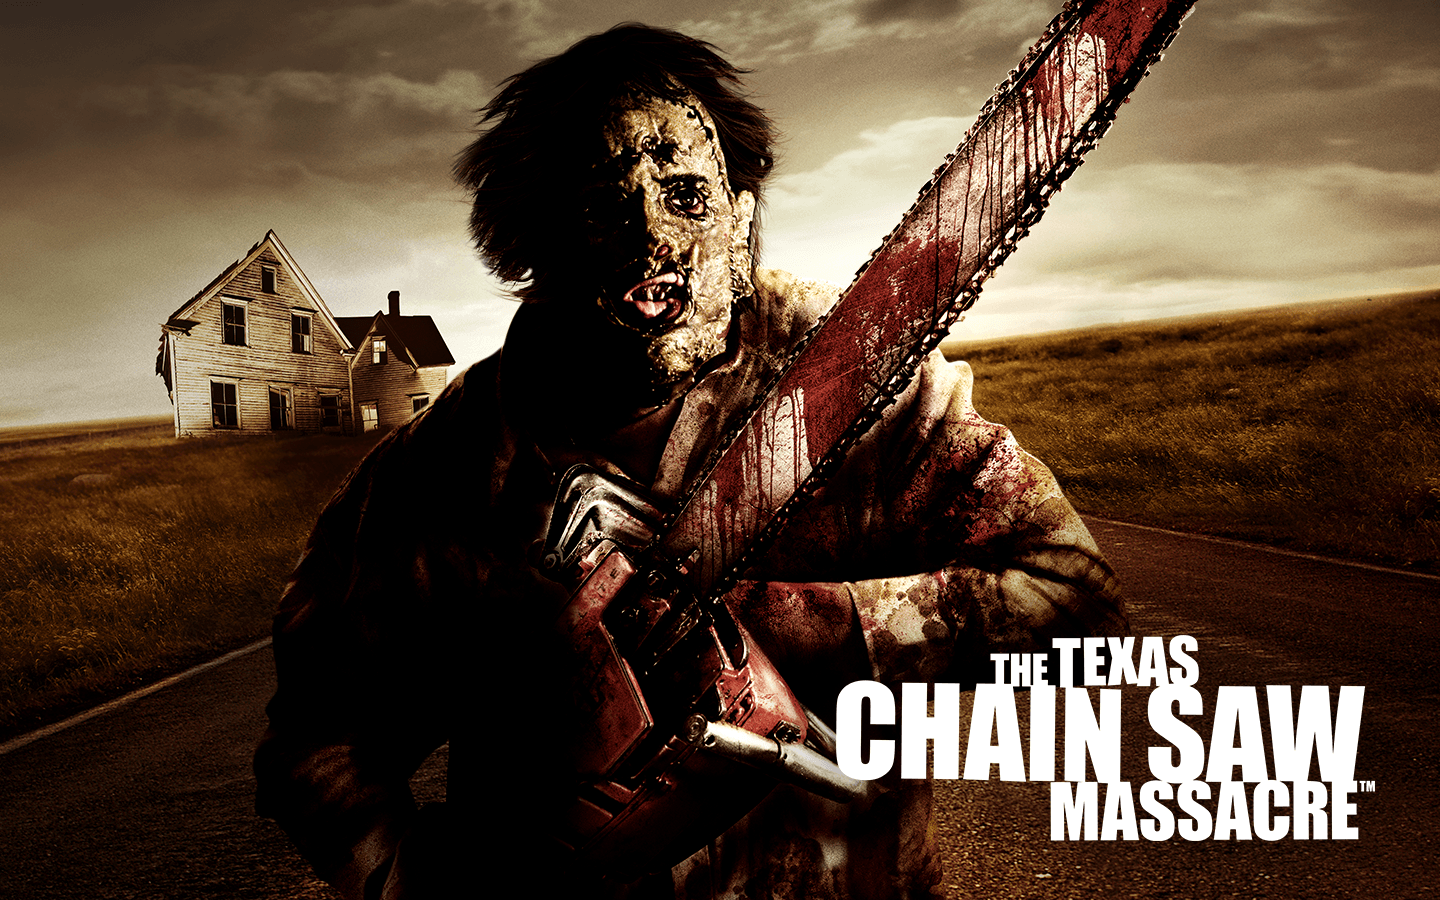 Texas Chain Saw Massacre coming to Halloween Horror Nights 26